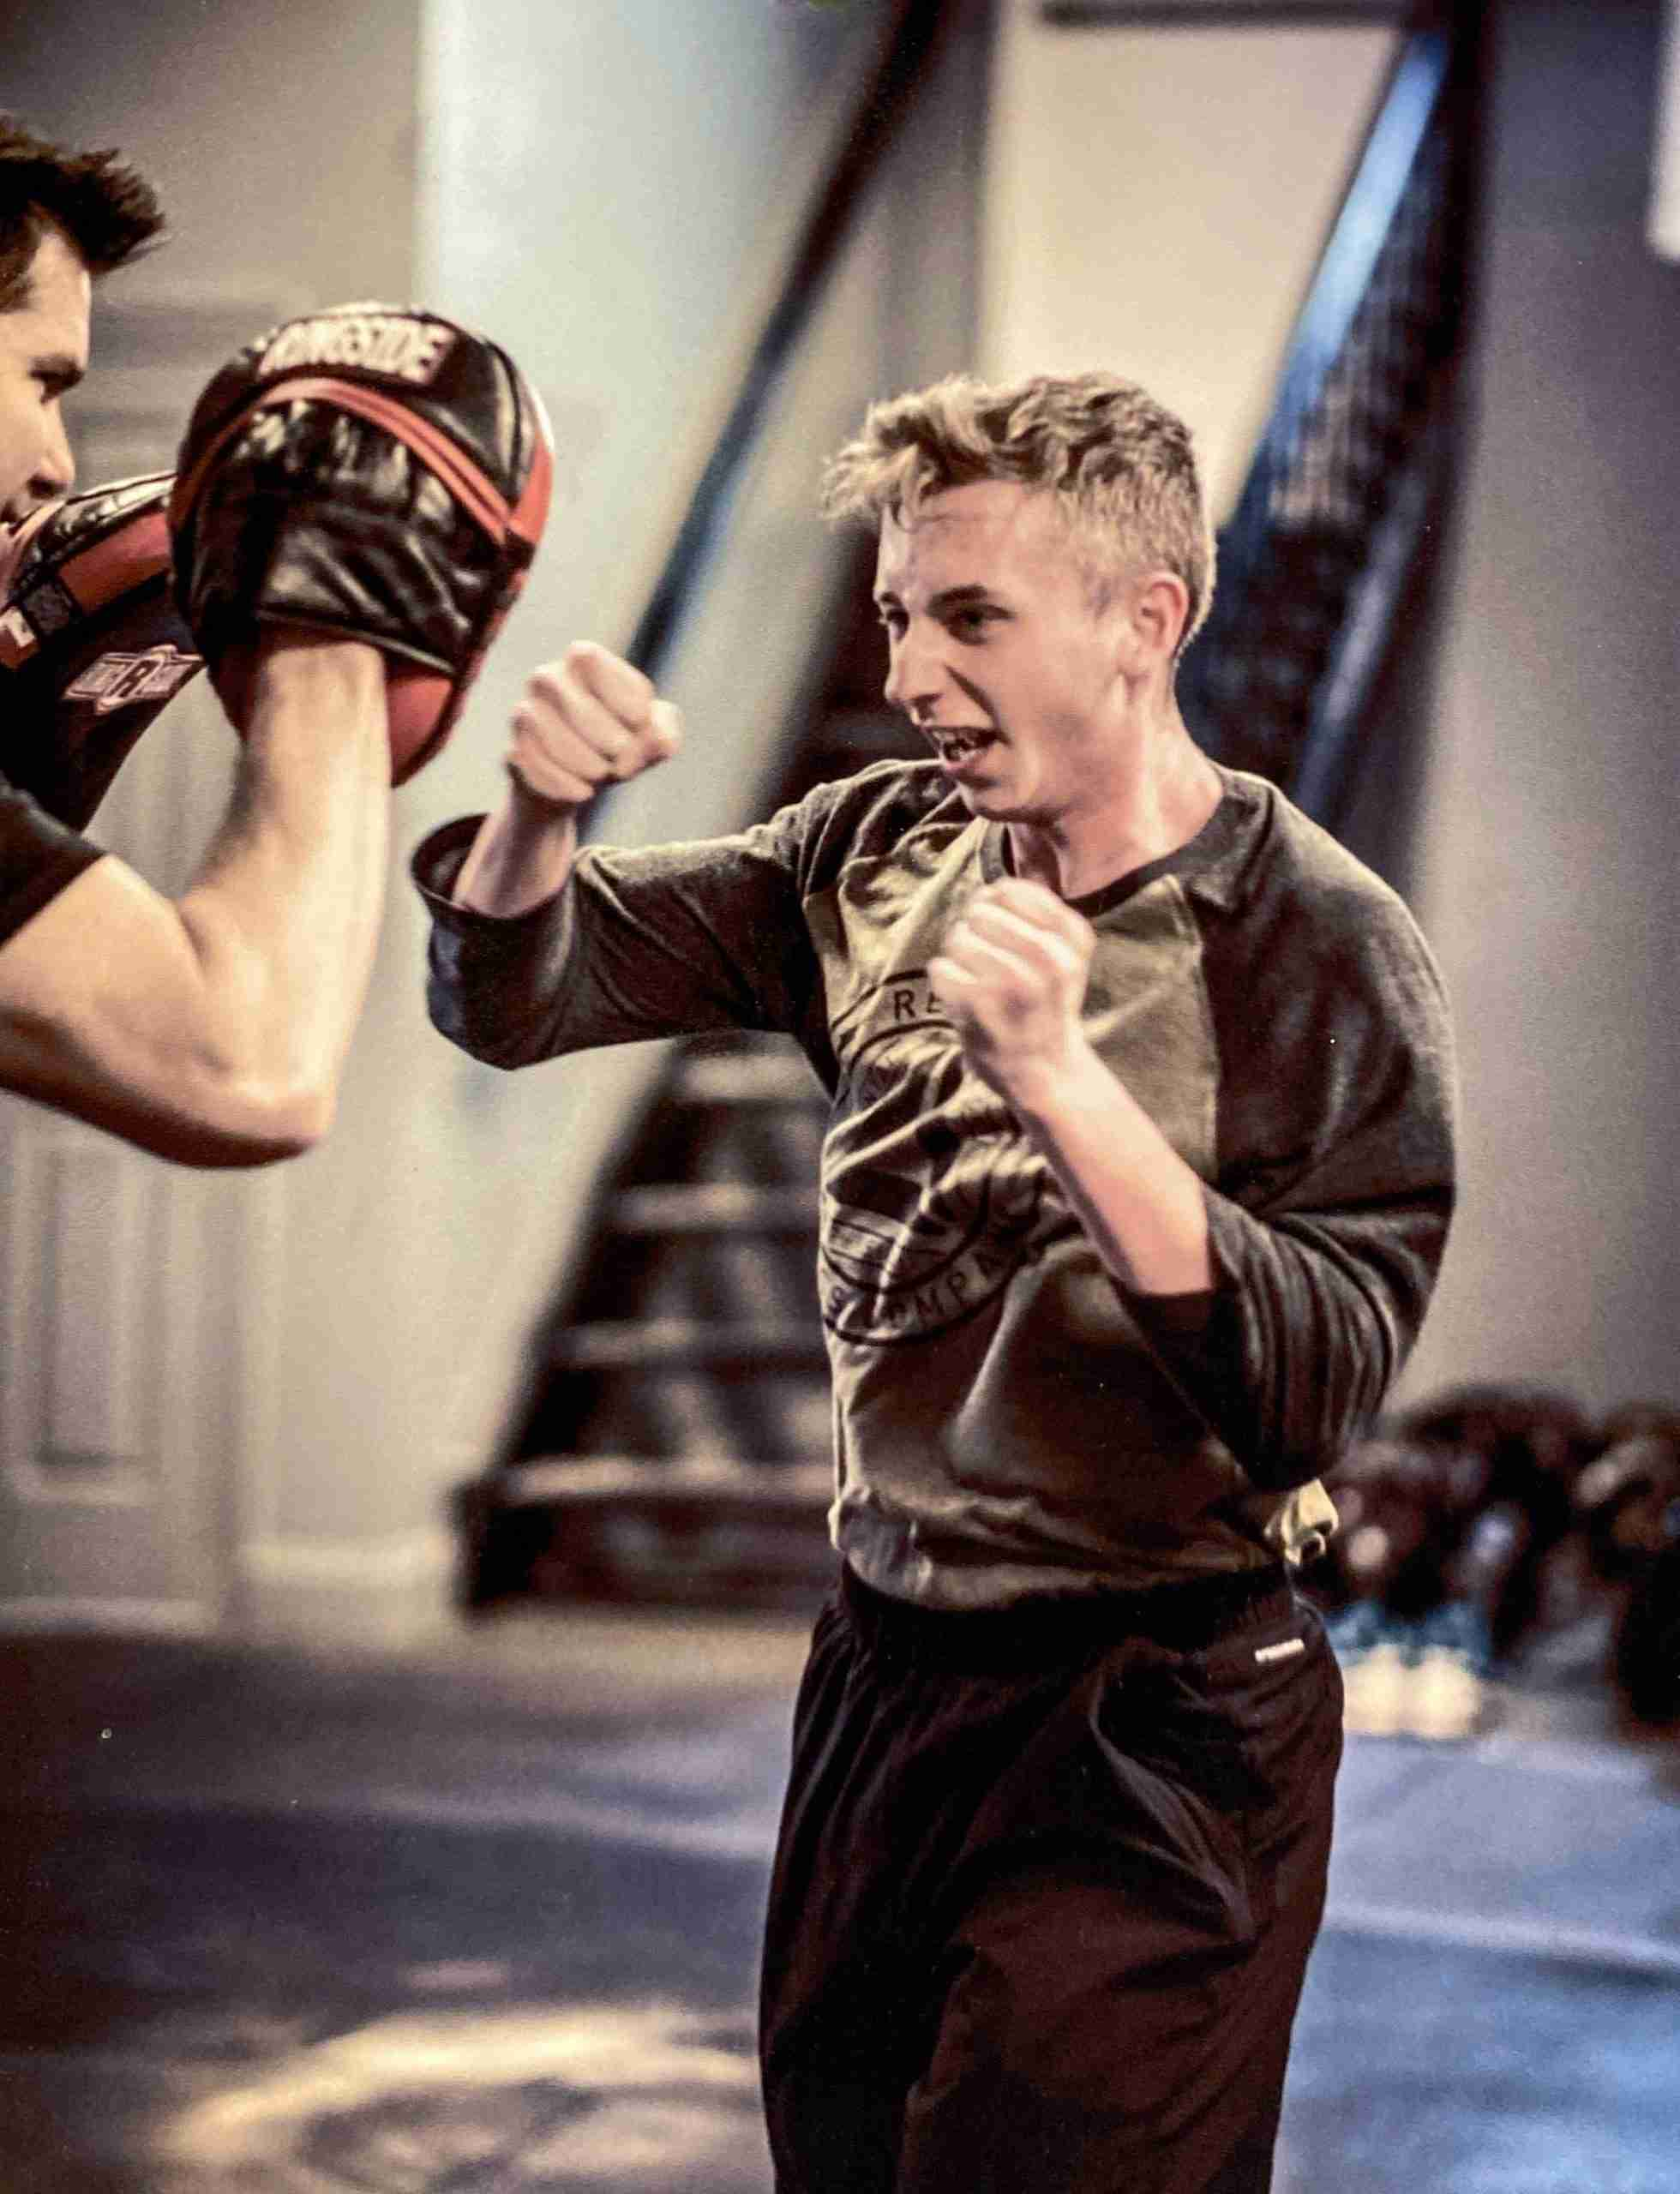 Matt holding pads for a young man punching